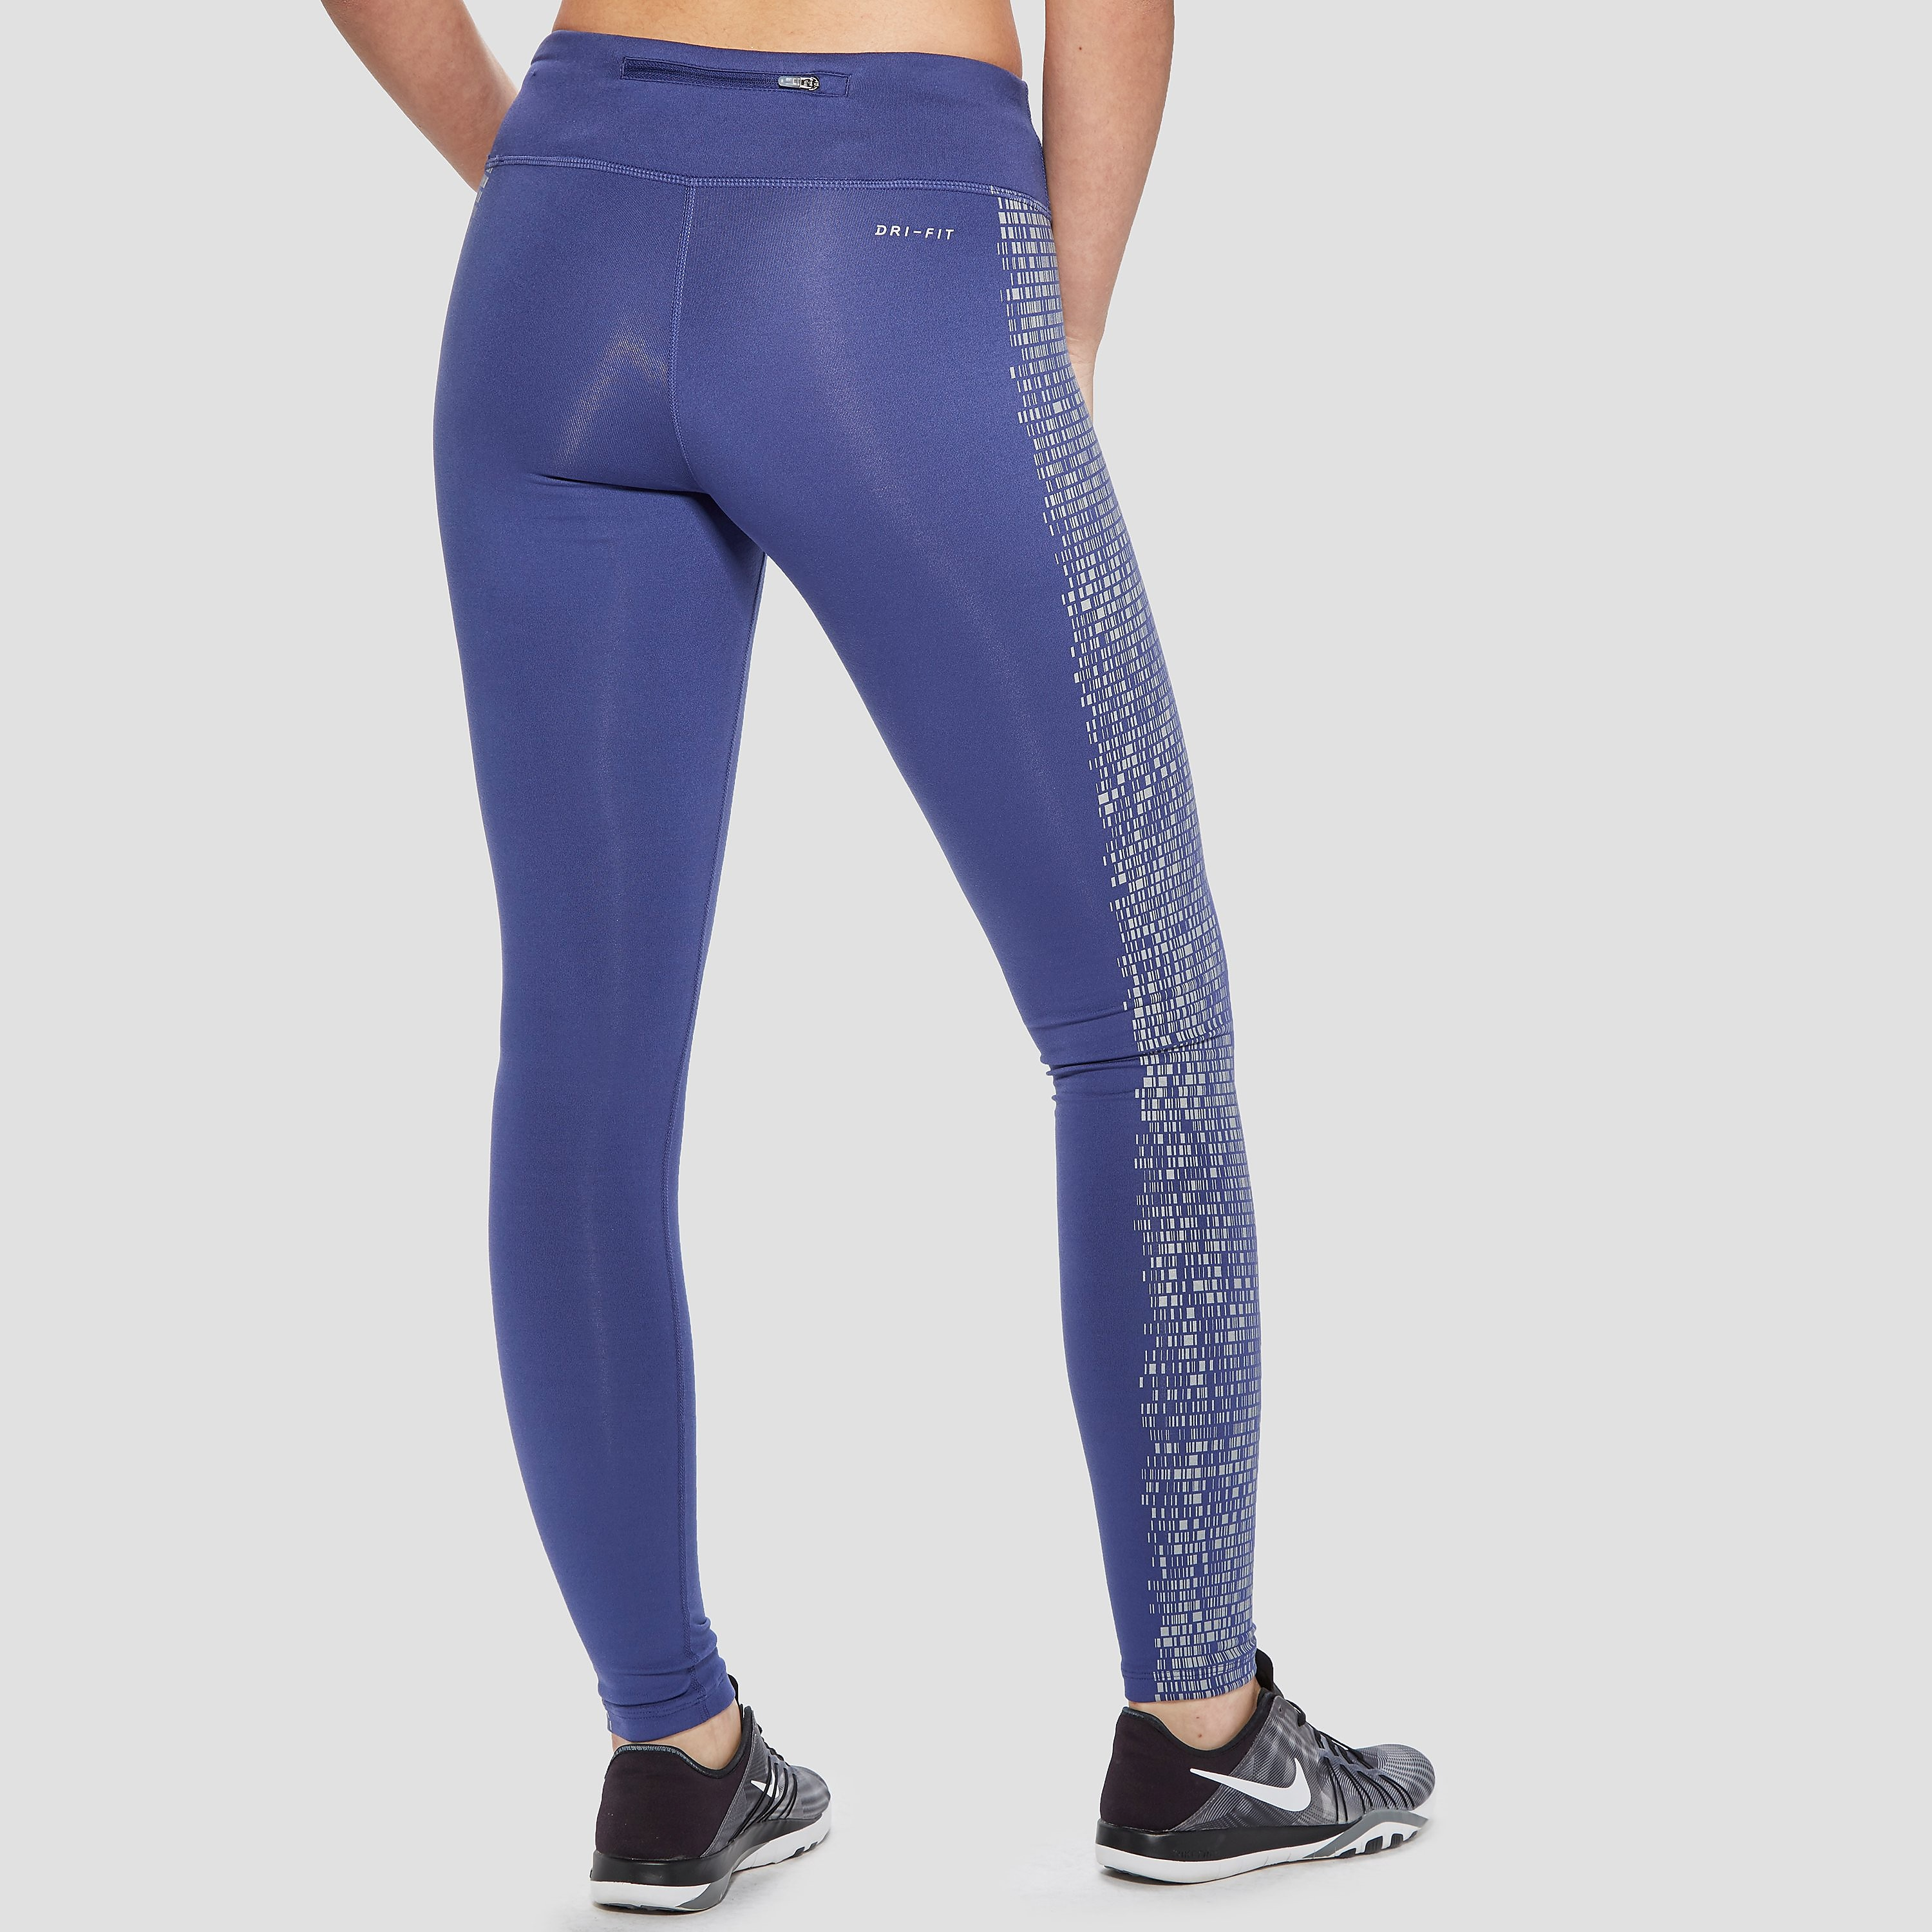 Nike Power Flash Epic Women's Running Tights